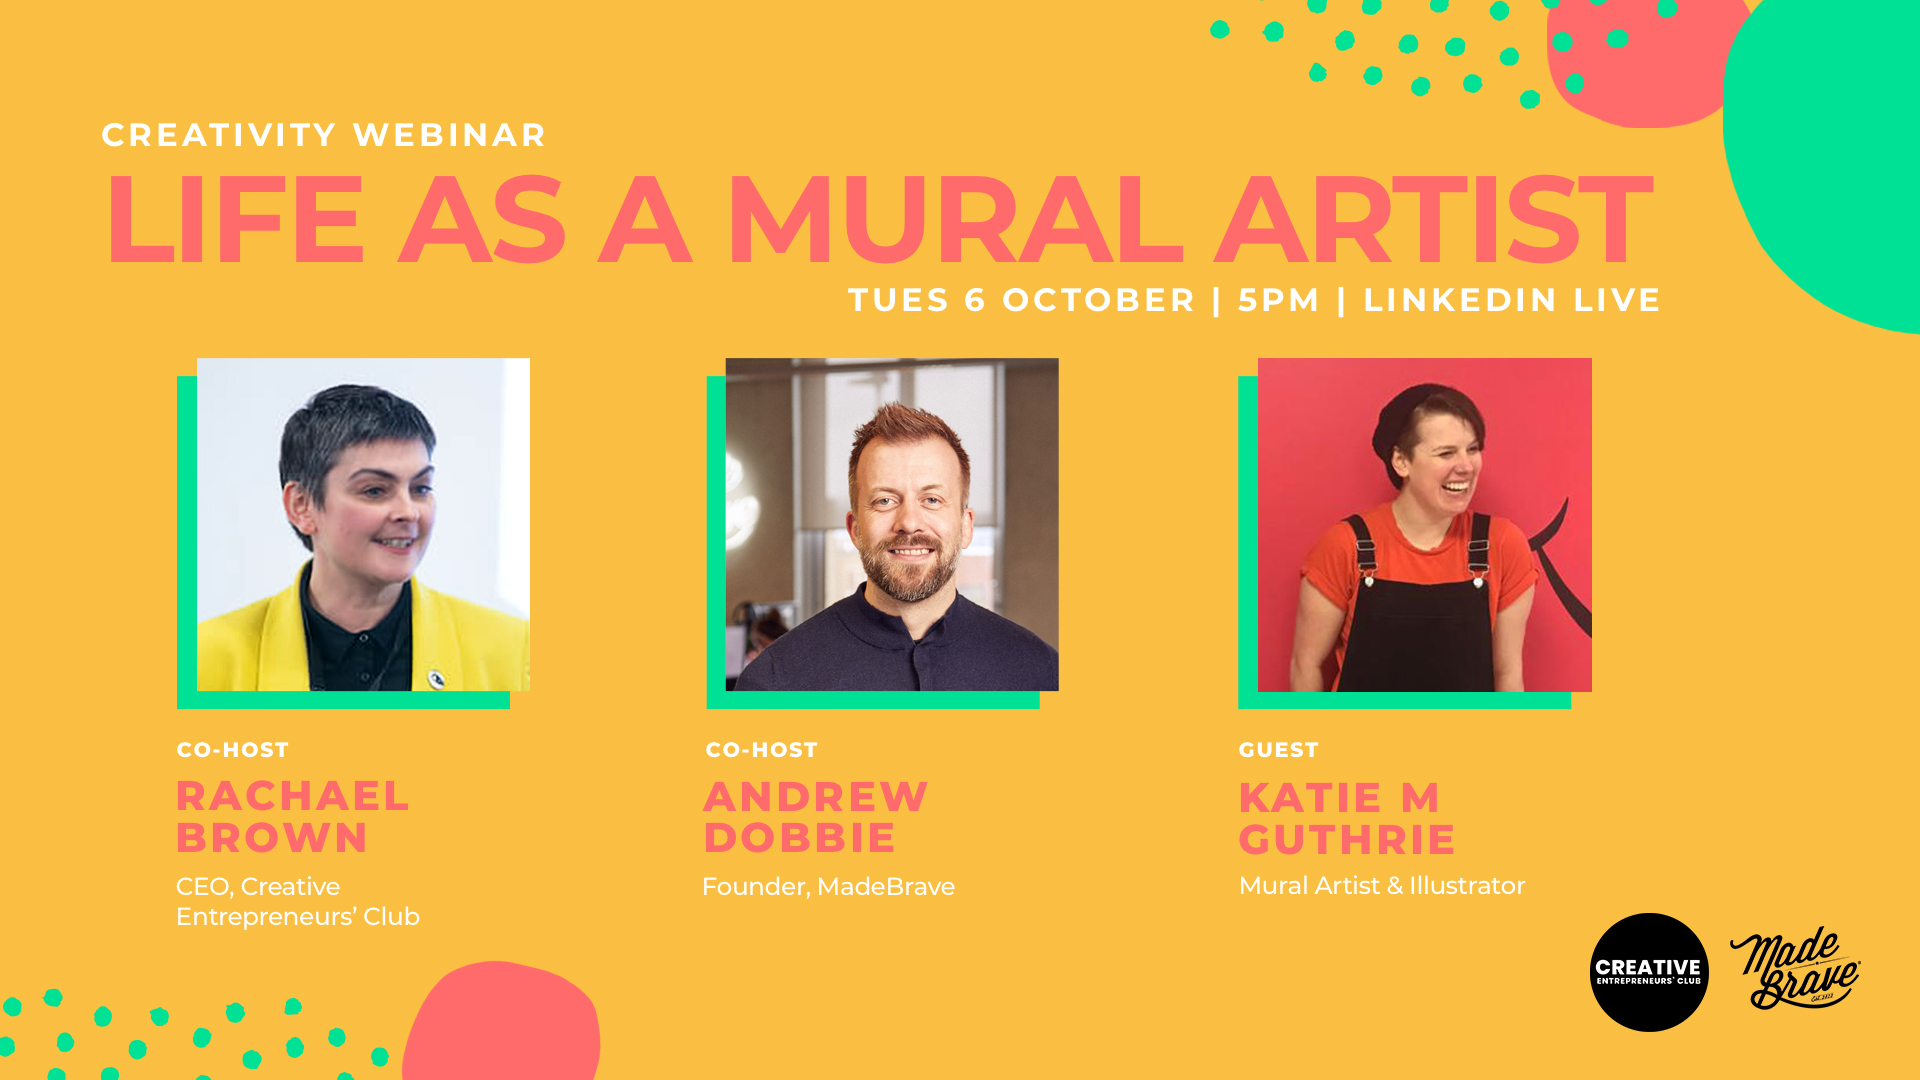 Life as a mural artist with Katie Guthrie & MadeBrave